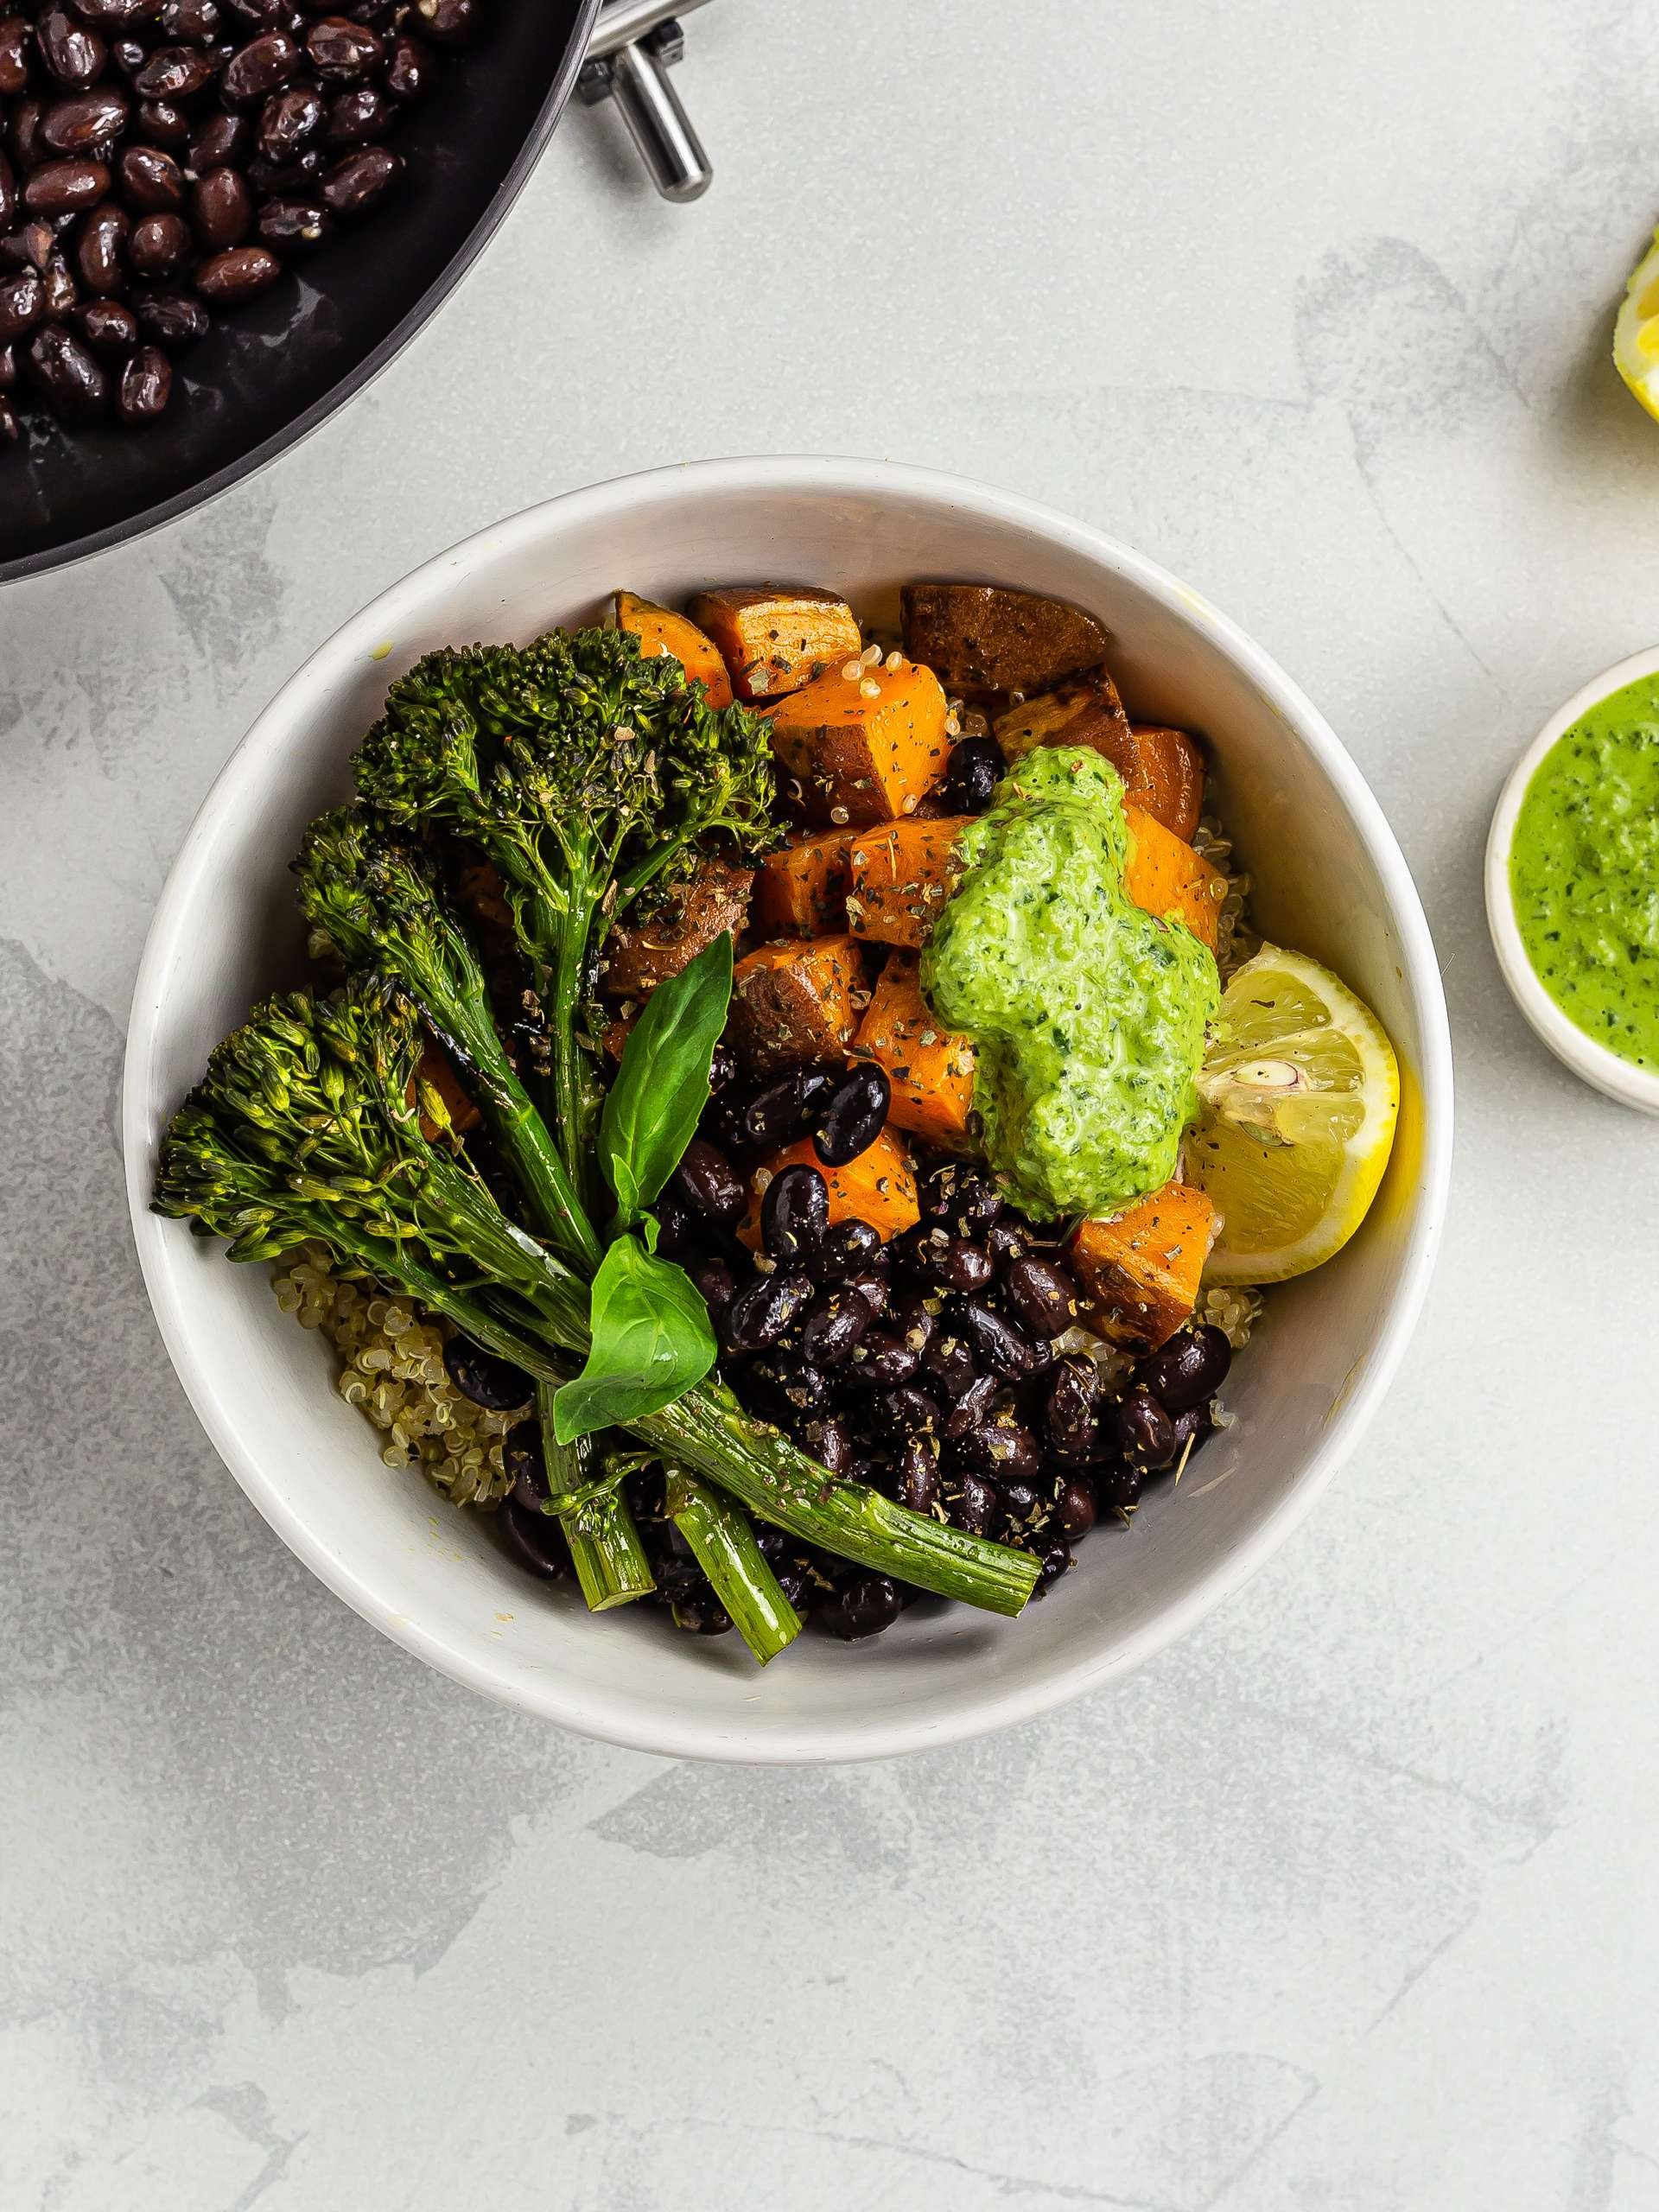 Sweet potato quinoa bowl with black beans and green tahini pesto